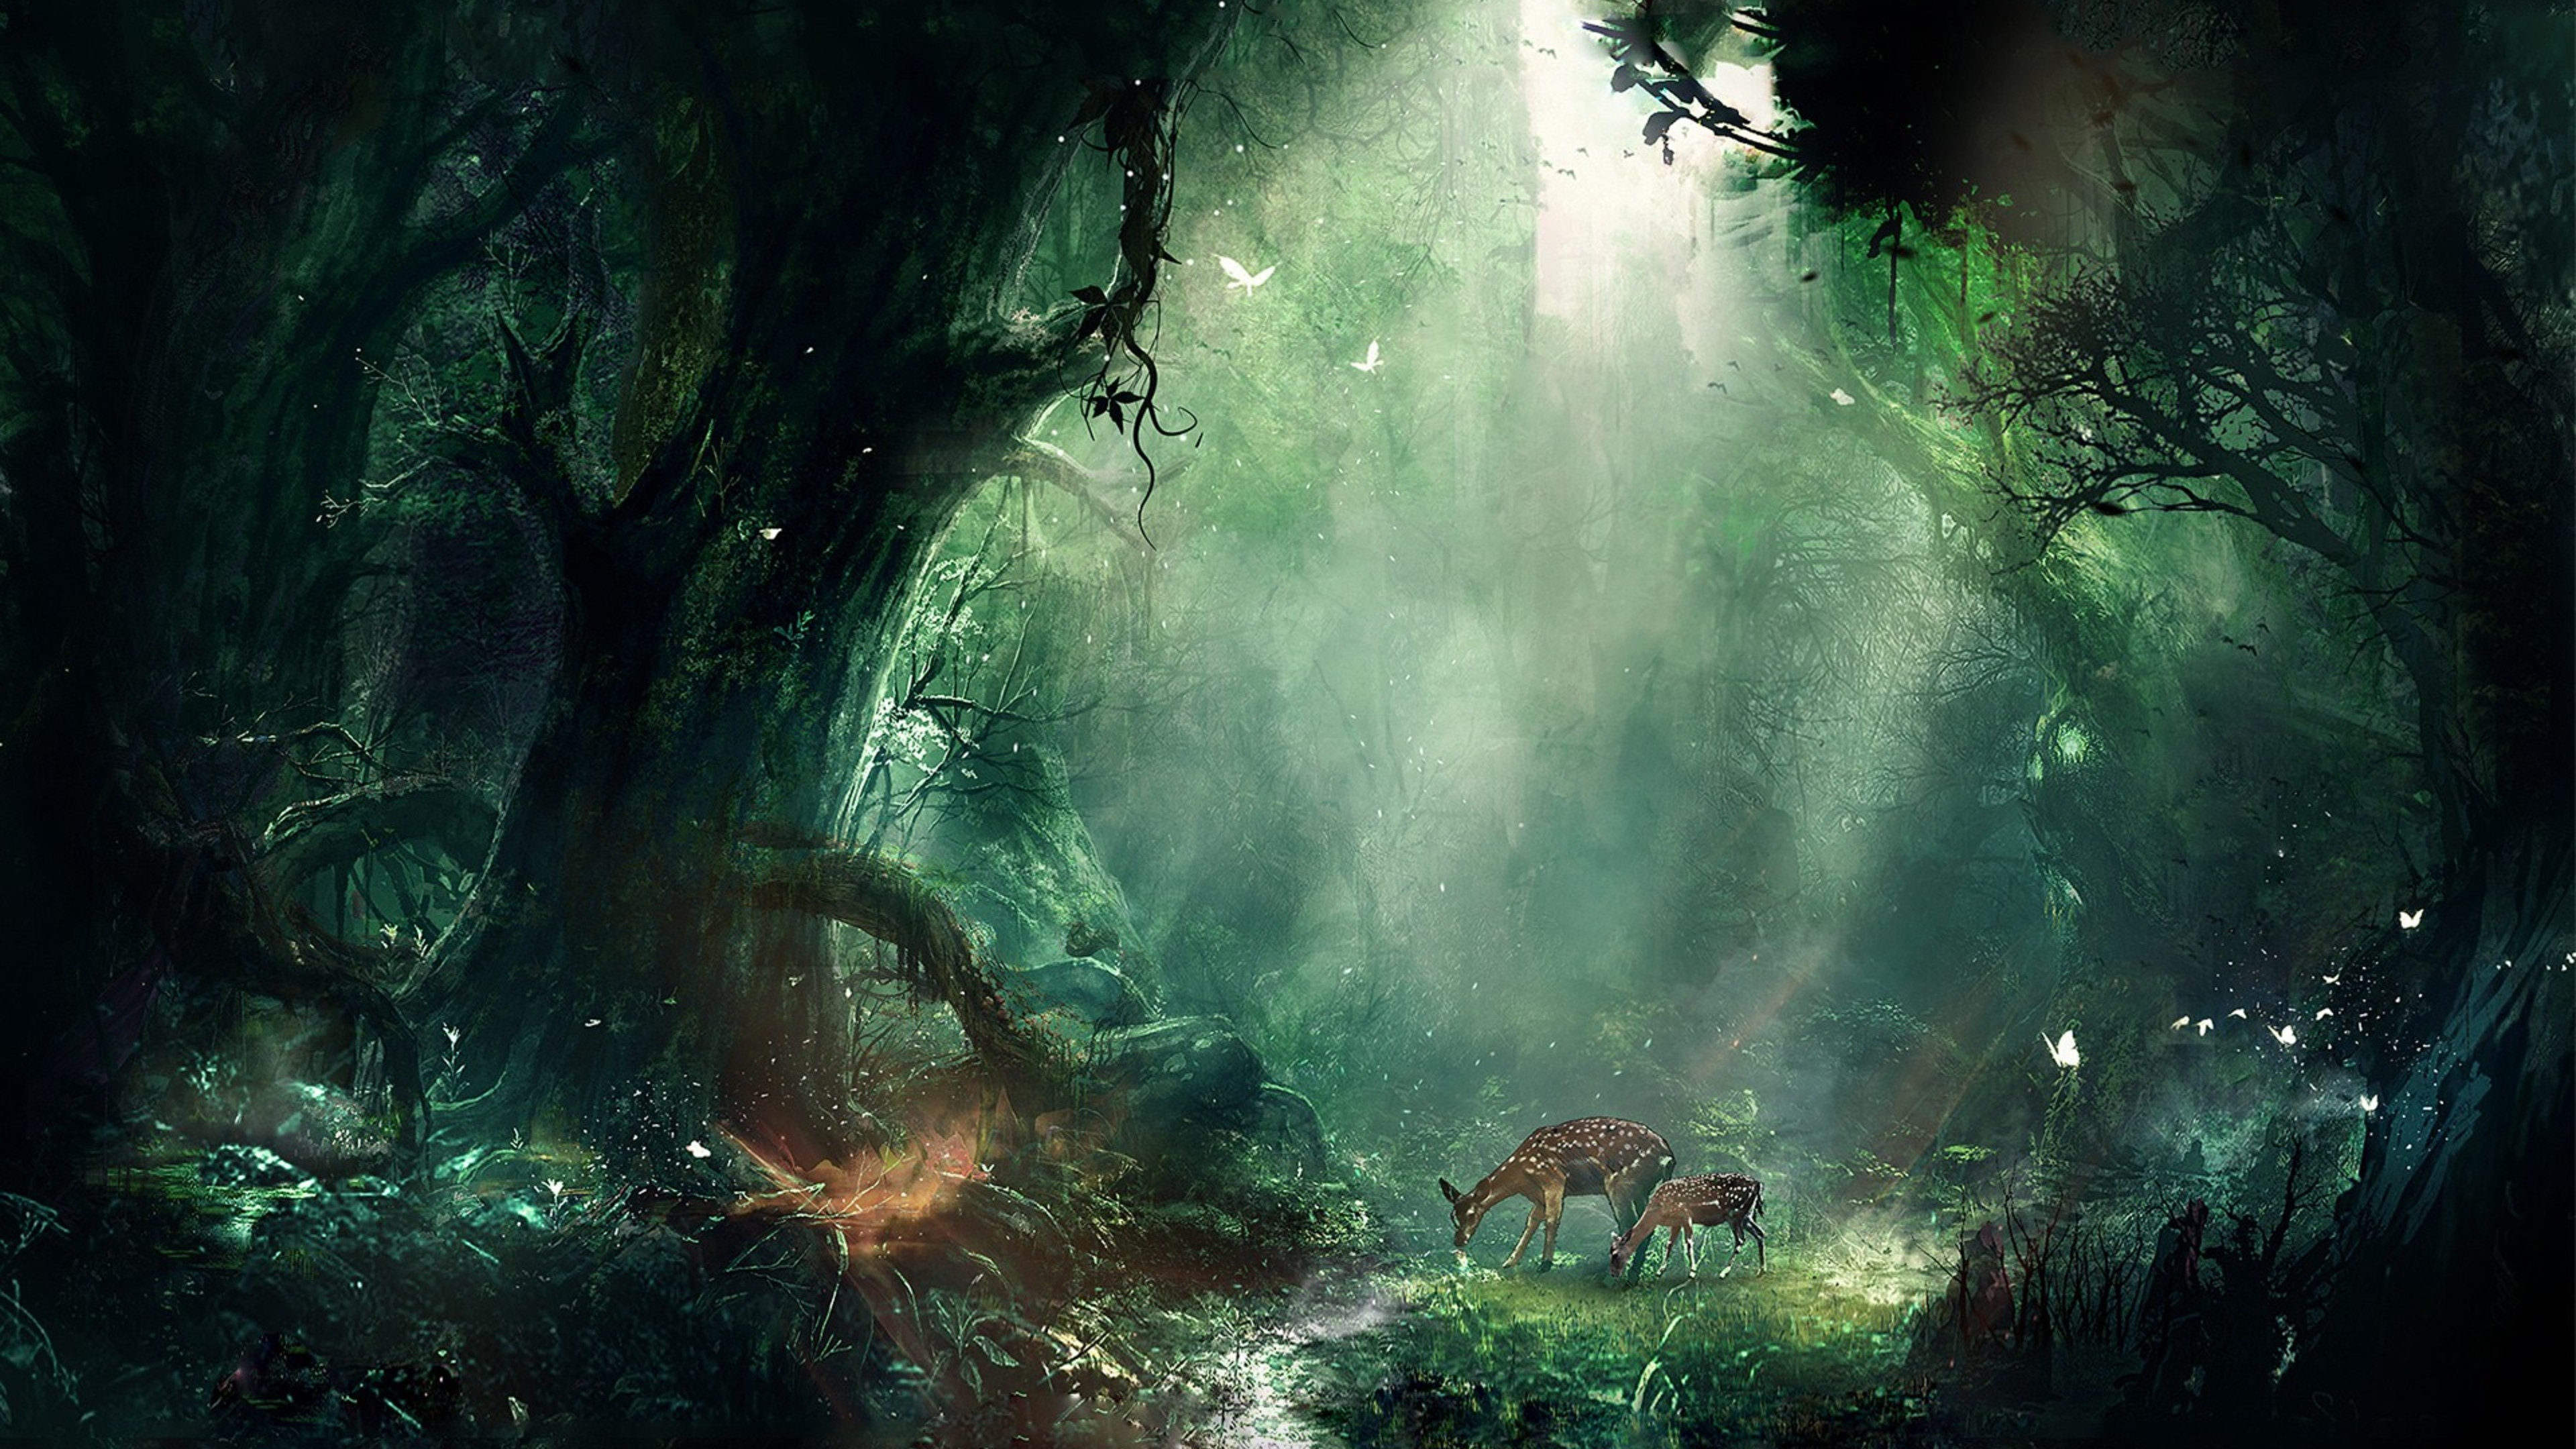 2048x1152 bambi jungle 2048x1152 resolution hd 4k